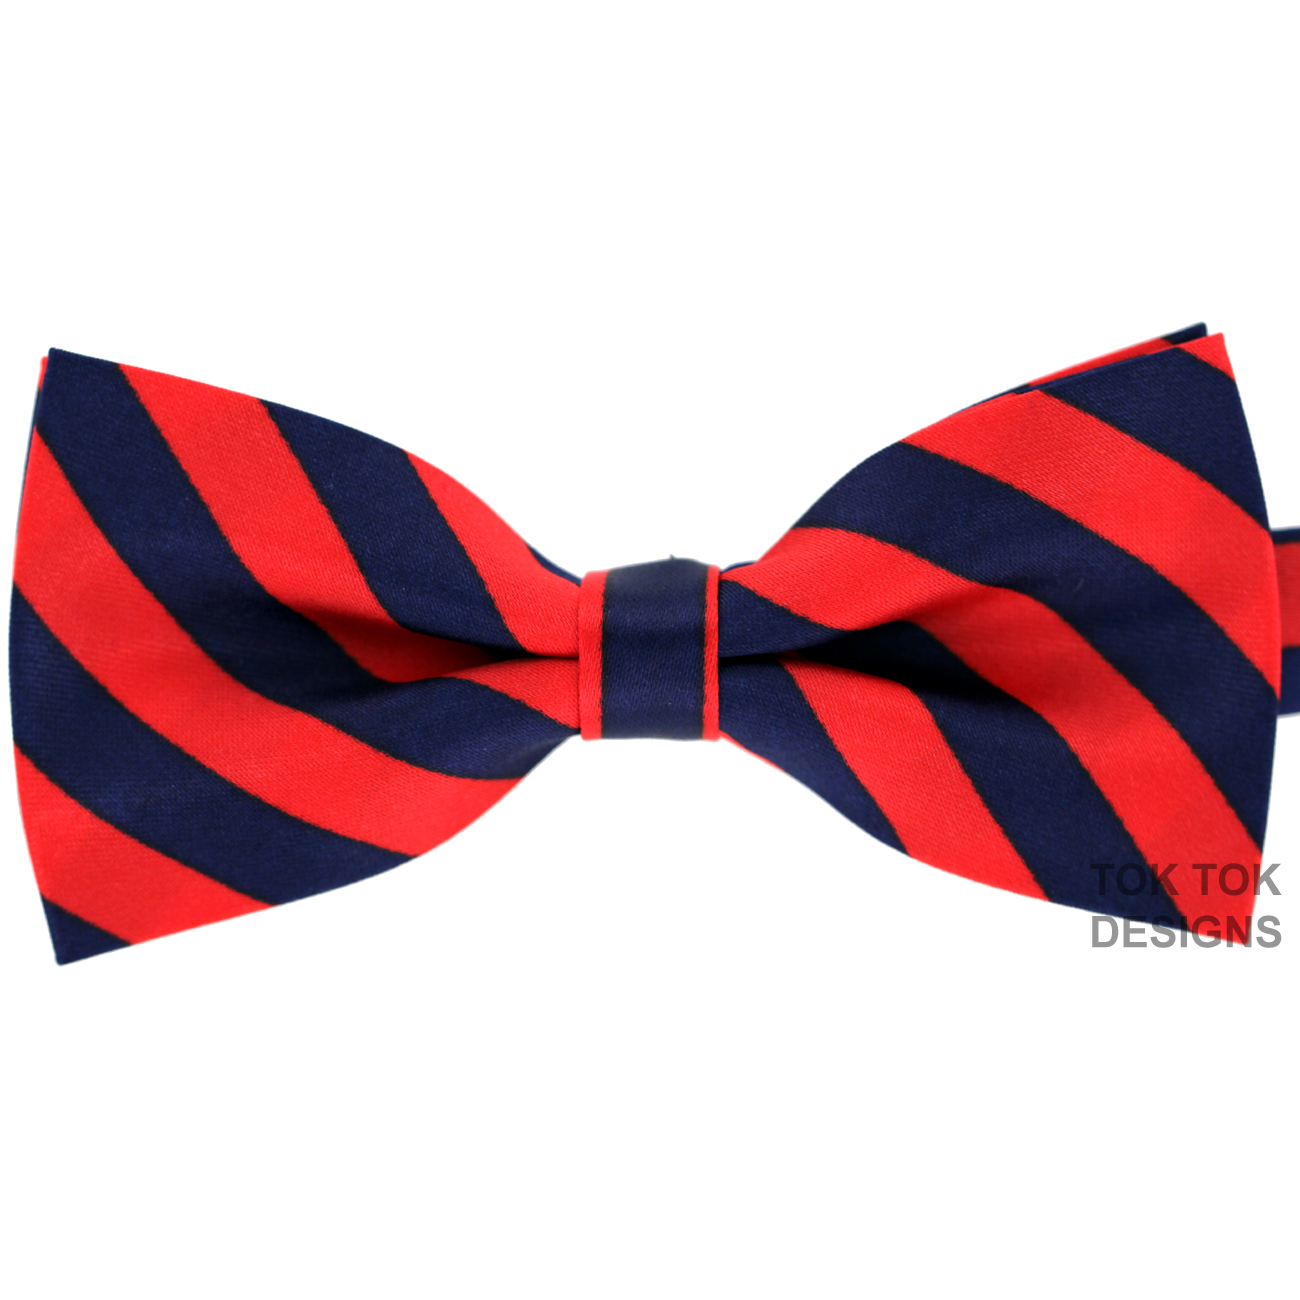 Bow Tie Man Quotes. QuotesGram